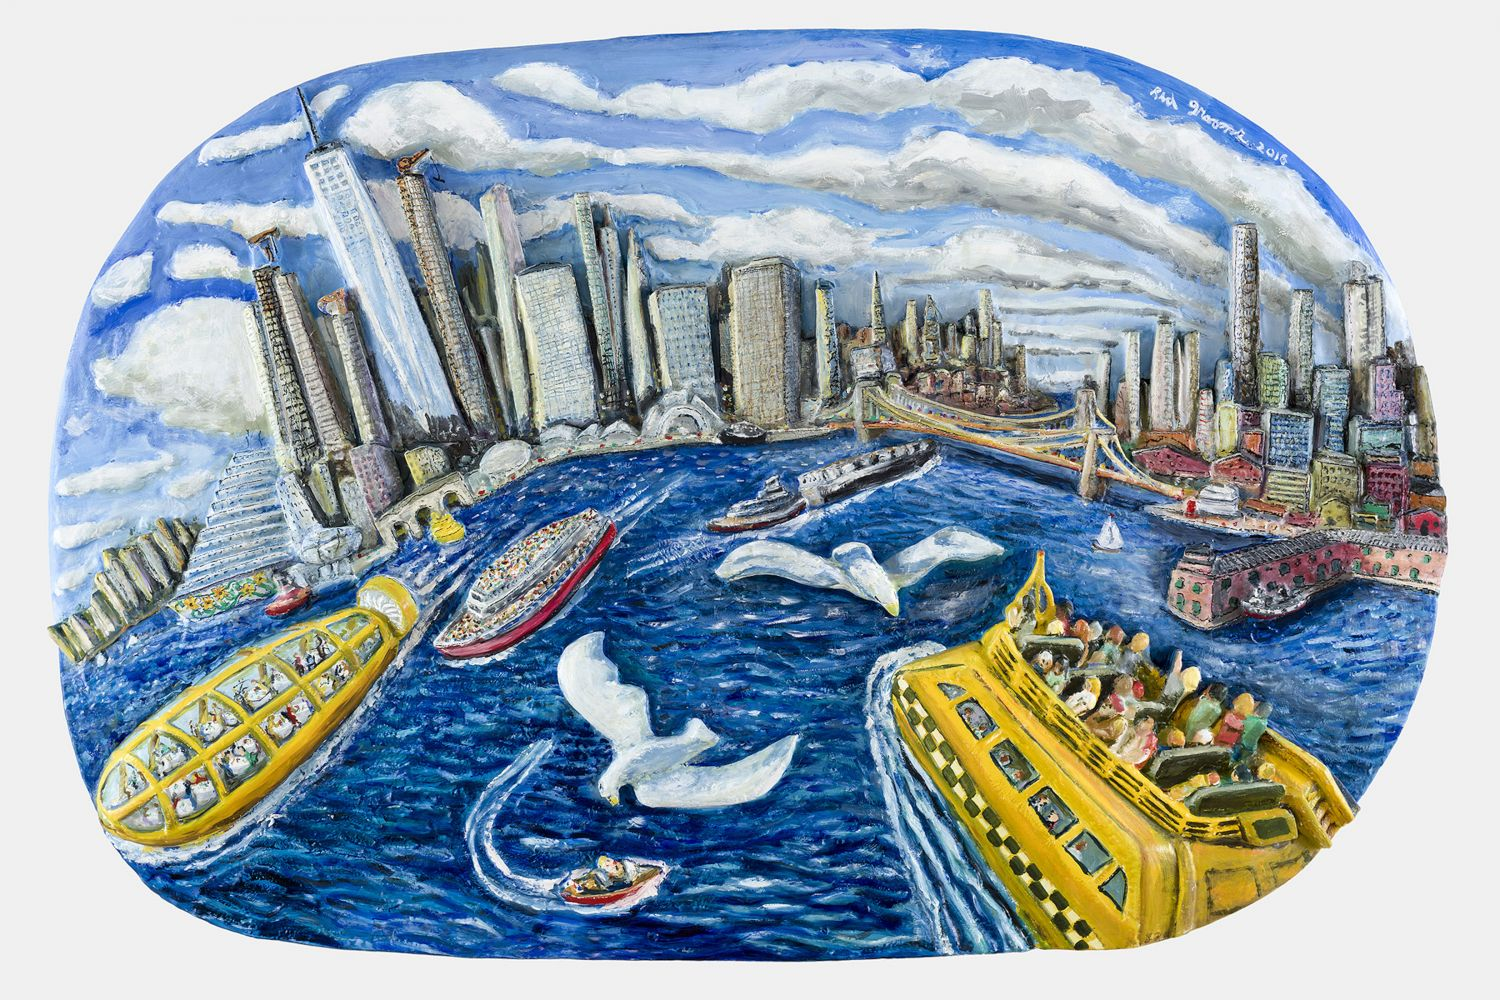 Acrylic, ink and epoxy mounted on wood artwork by Red Grooms of the New York Harbor with people on yellow boats and seagulls flying